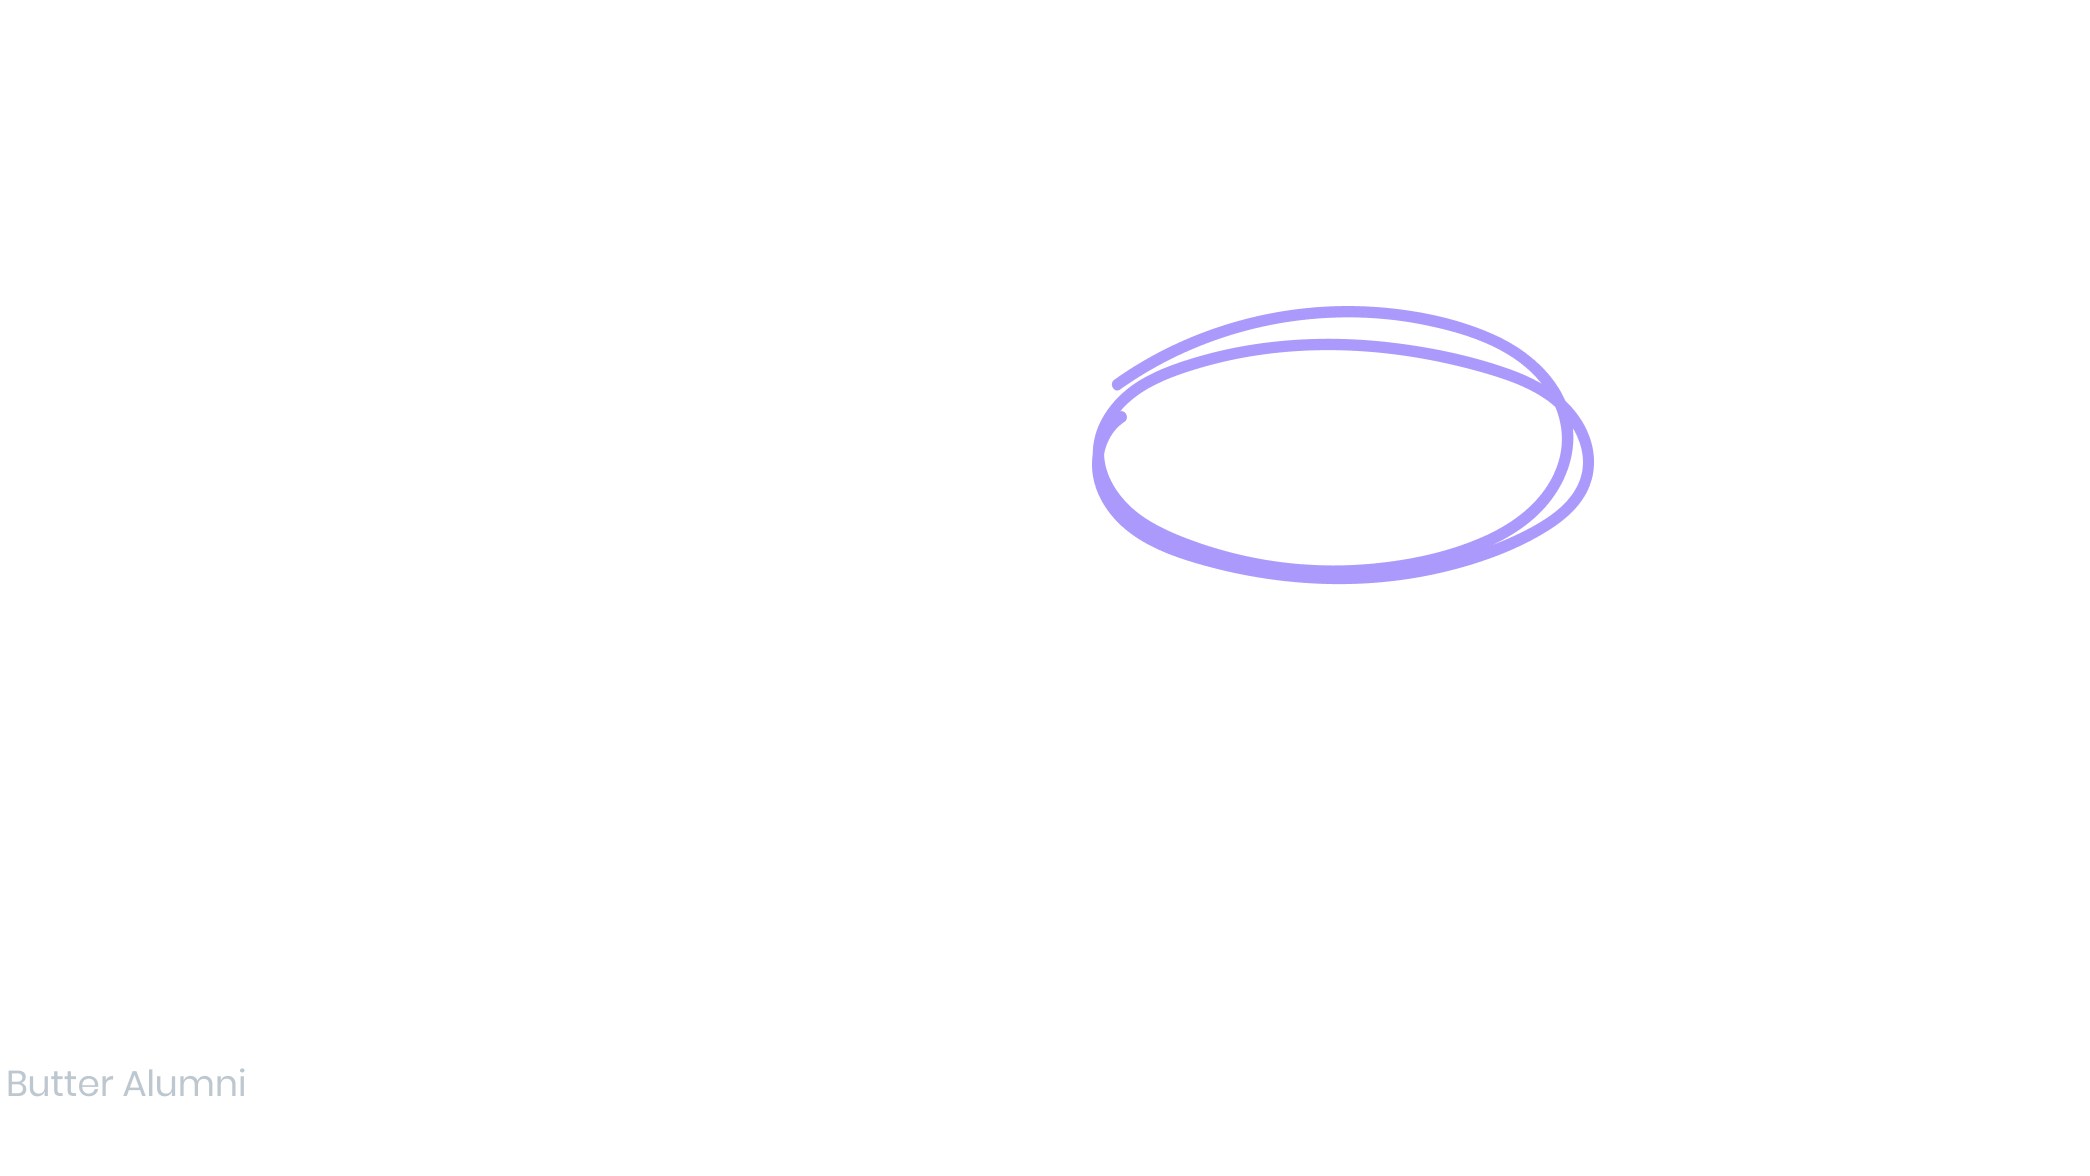 It was detailed and thorough. A good start for those fresh to UX design or looking to switch careers. - Jade